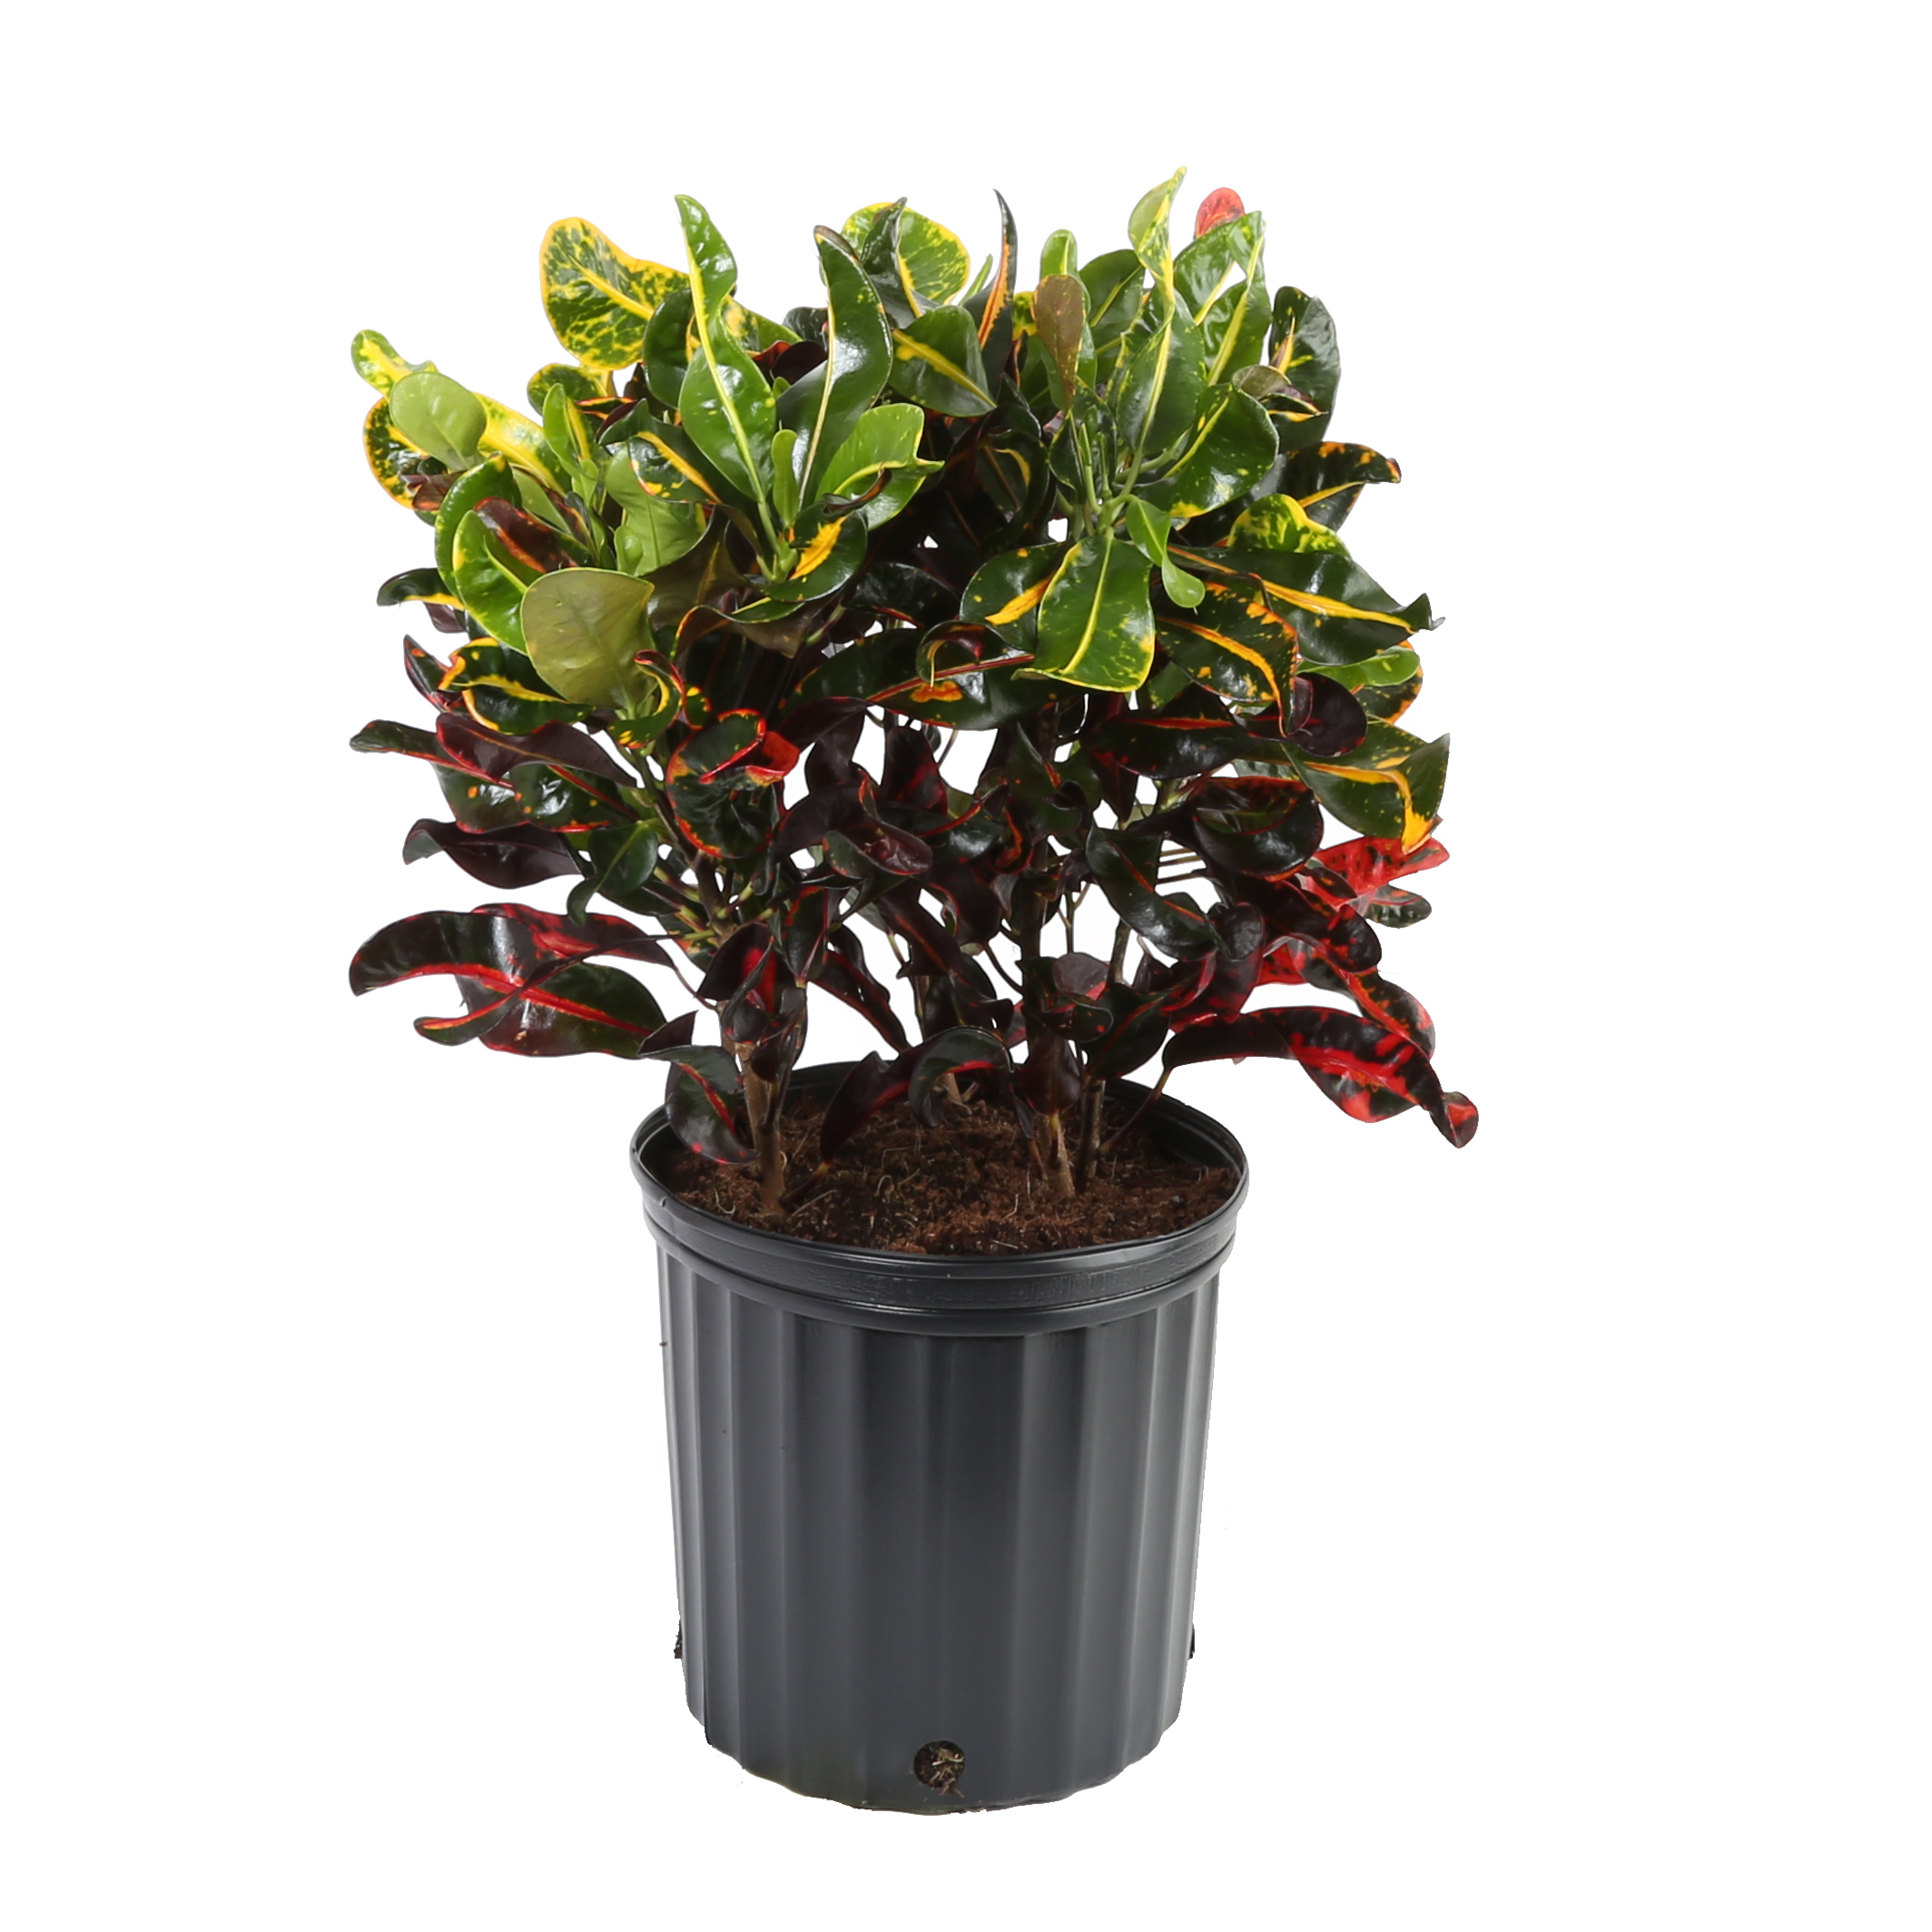 Croton (Codiaeum) Red Mammy Easy Care Live House Plant from Delray Plants, 10-inch Grower Pot